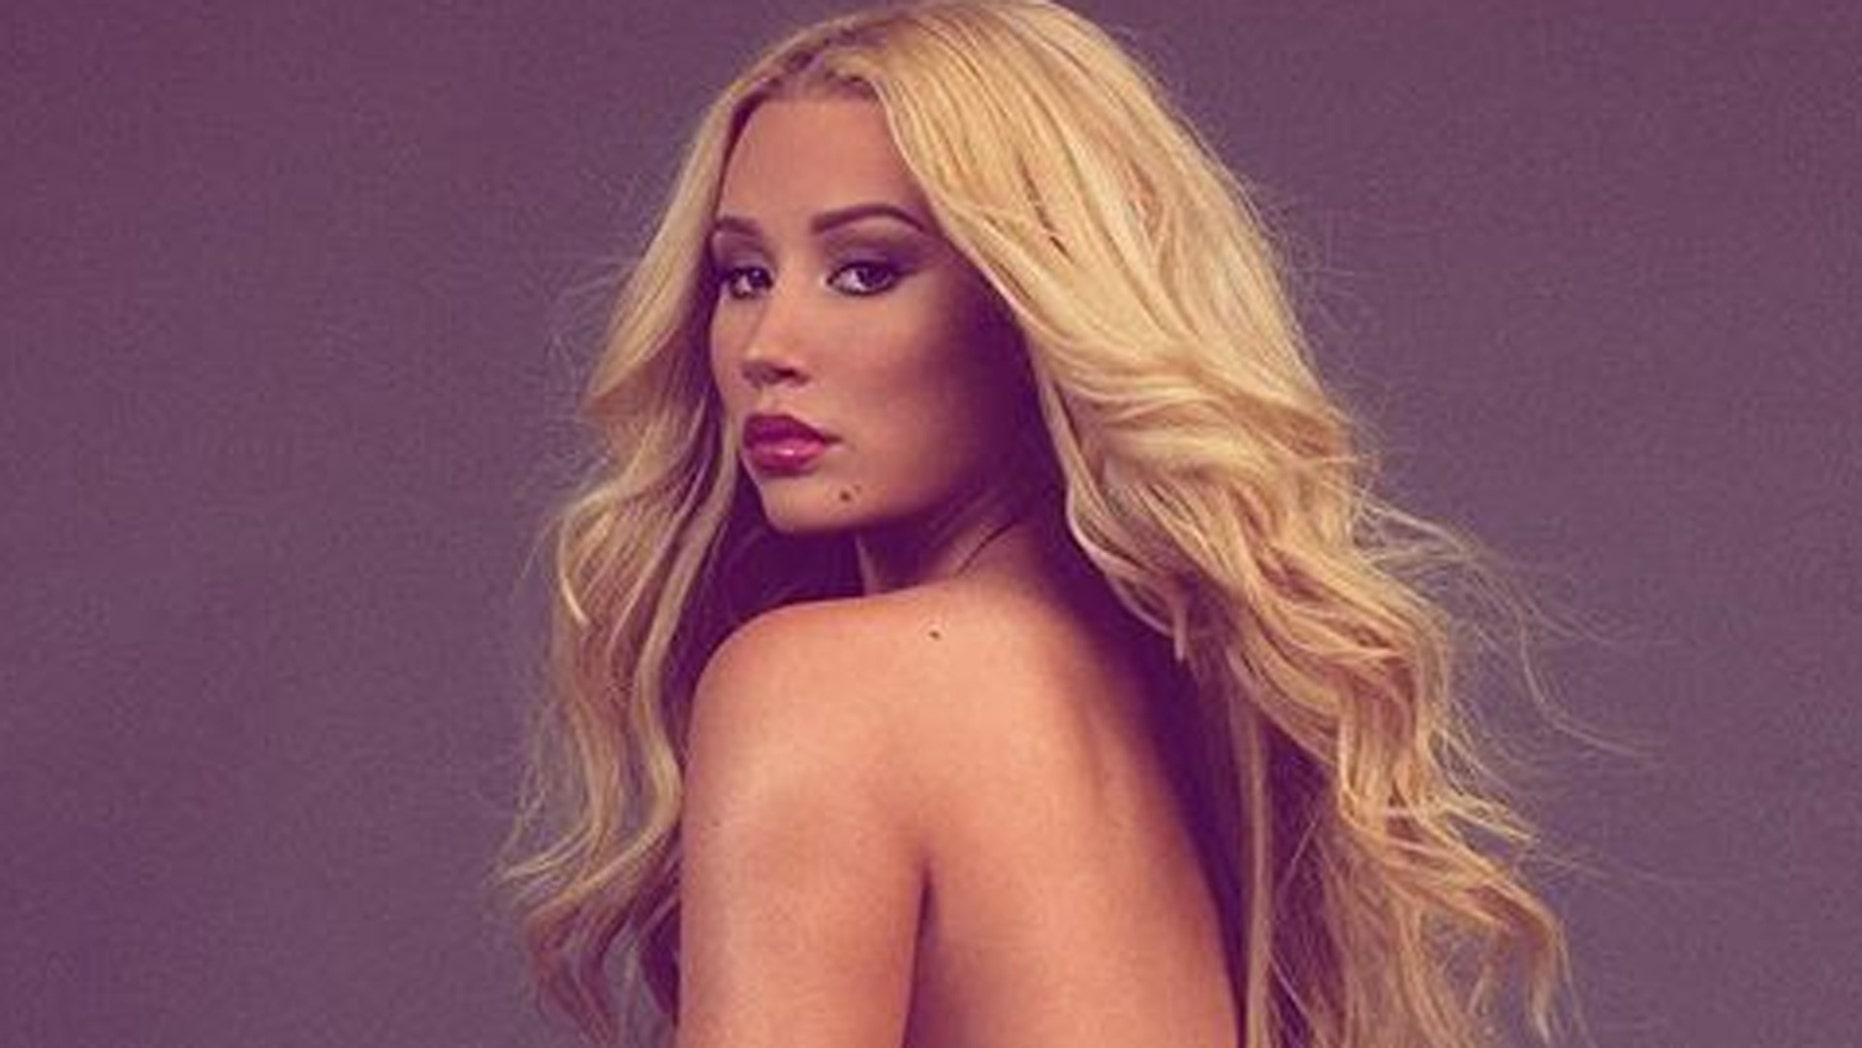 Iggy Azalea defends her racy Instagram photos and claps back at haters who have criticized her for sharing the snaps.